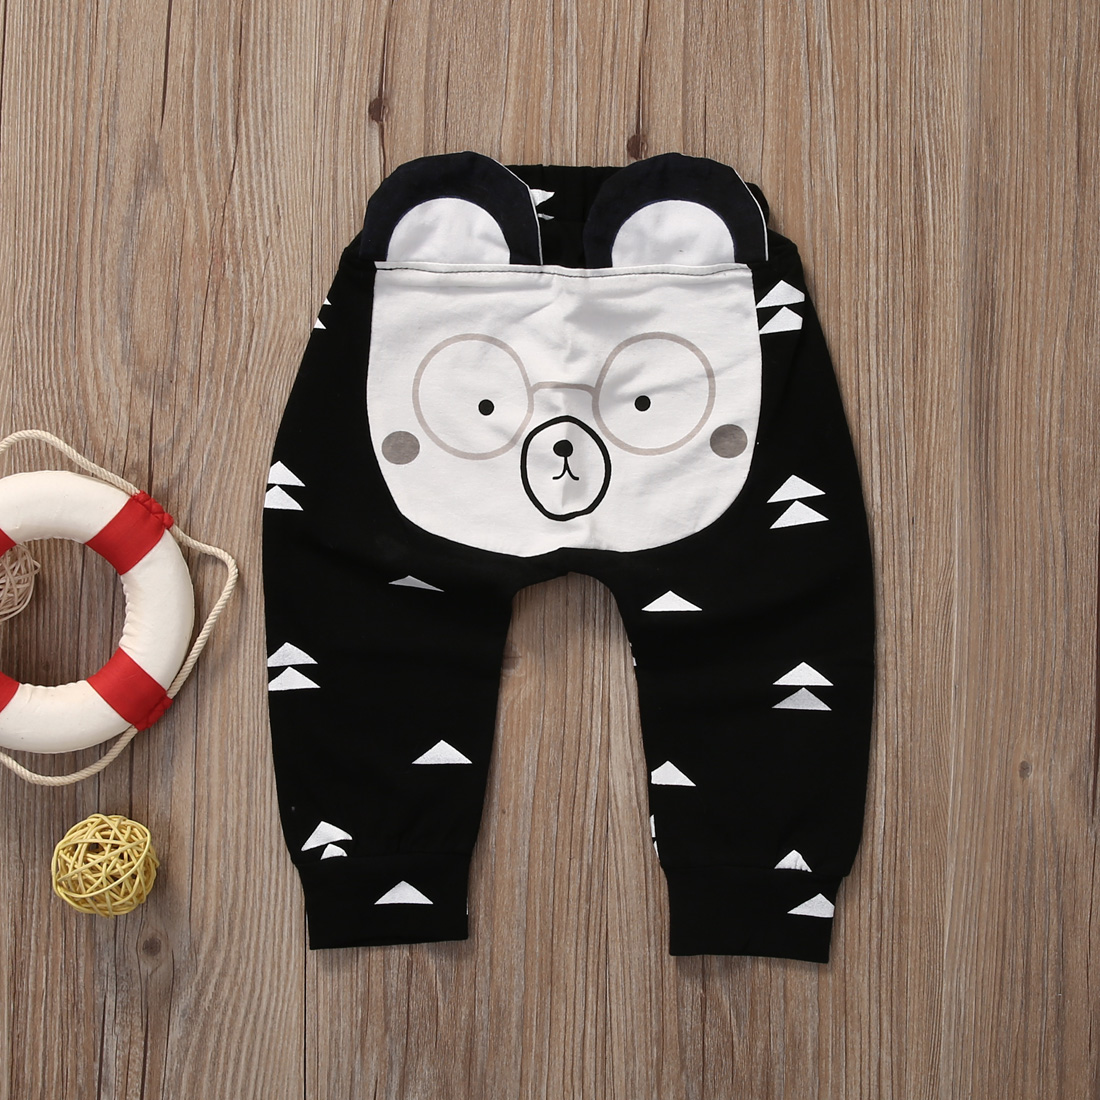 Baby-Girls-Boys-Pants-Cotton-Harem-Pants-Cartoon-Casual-Toddler-Baby-Bottoms-Pants-Boys-Girls-Cartoon-Harem-Pants-Trousers-3